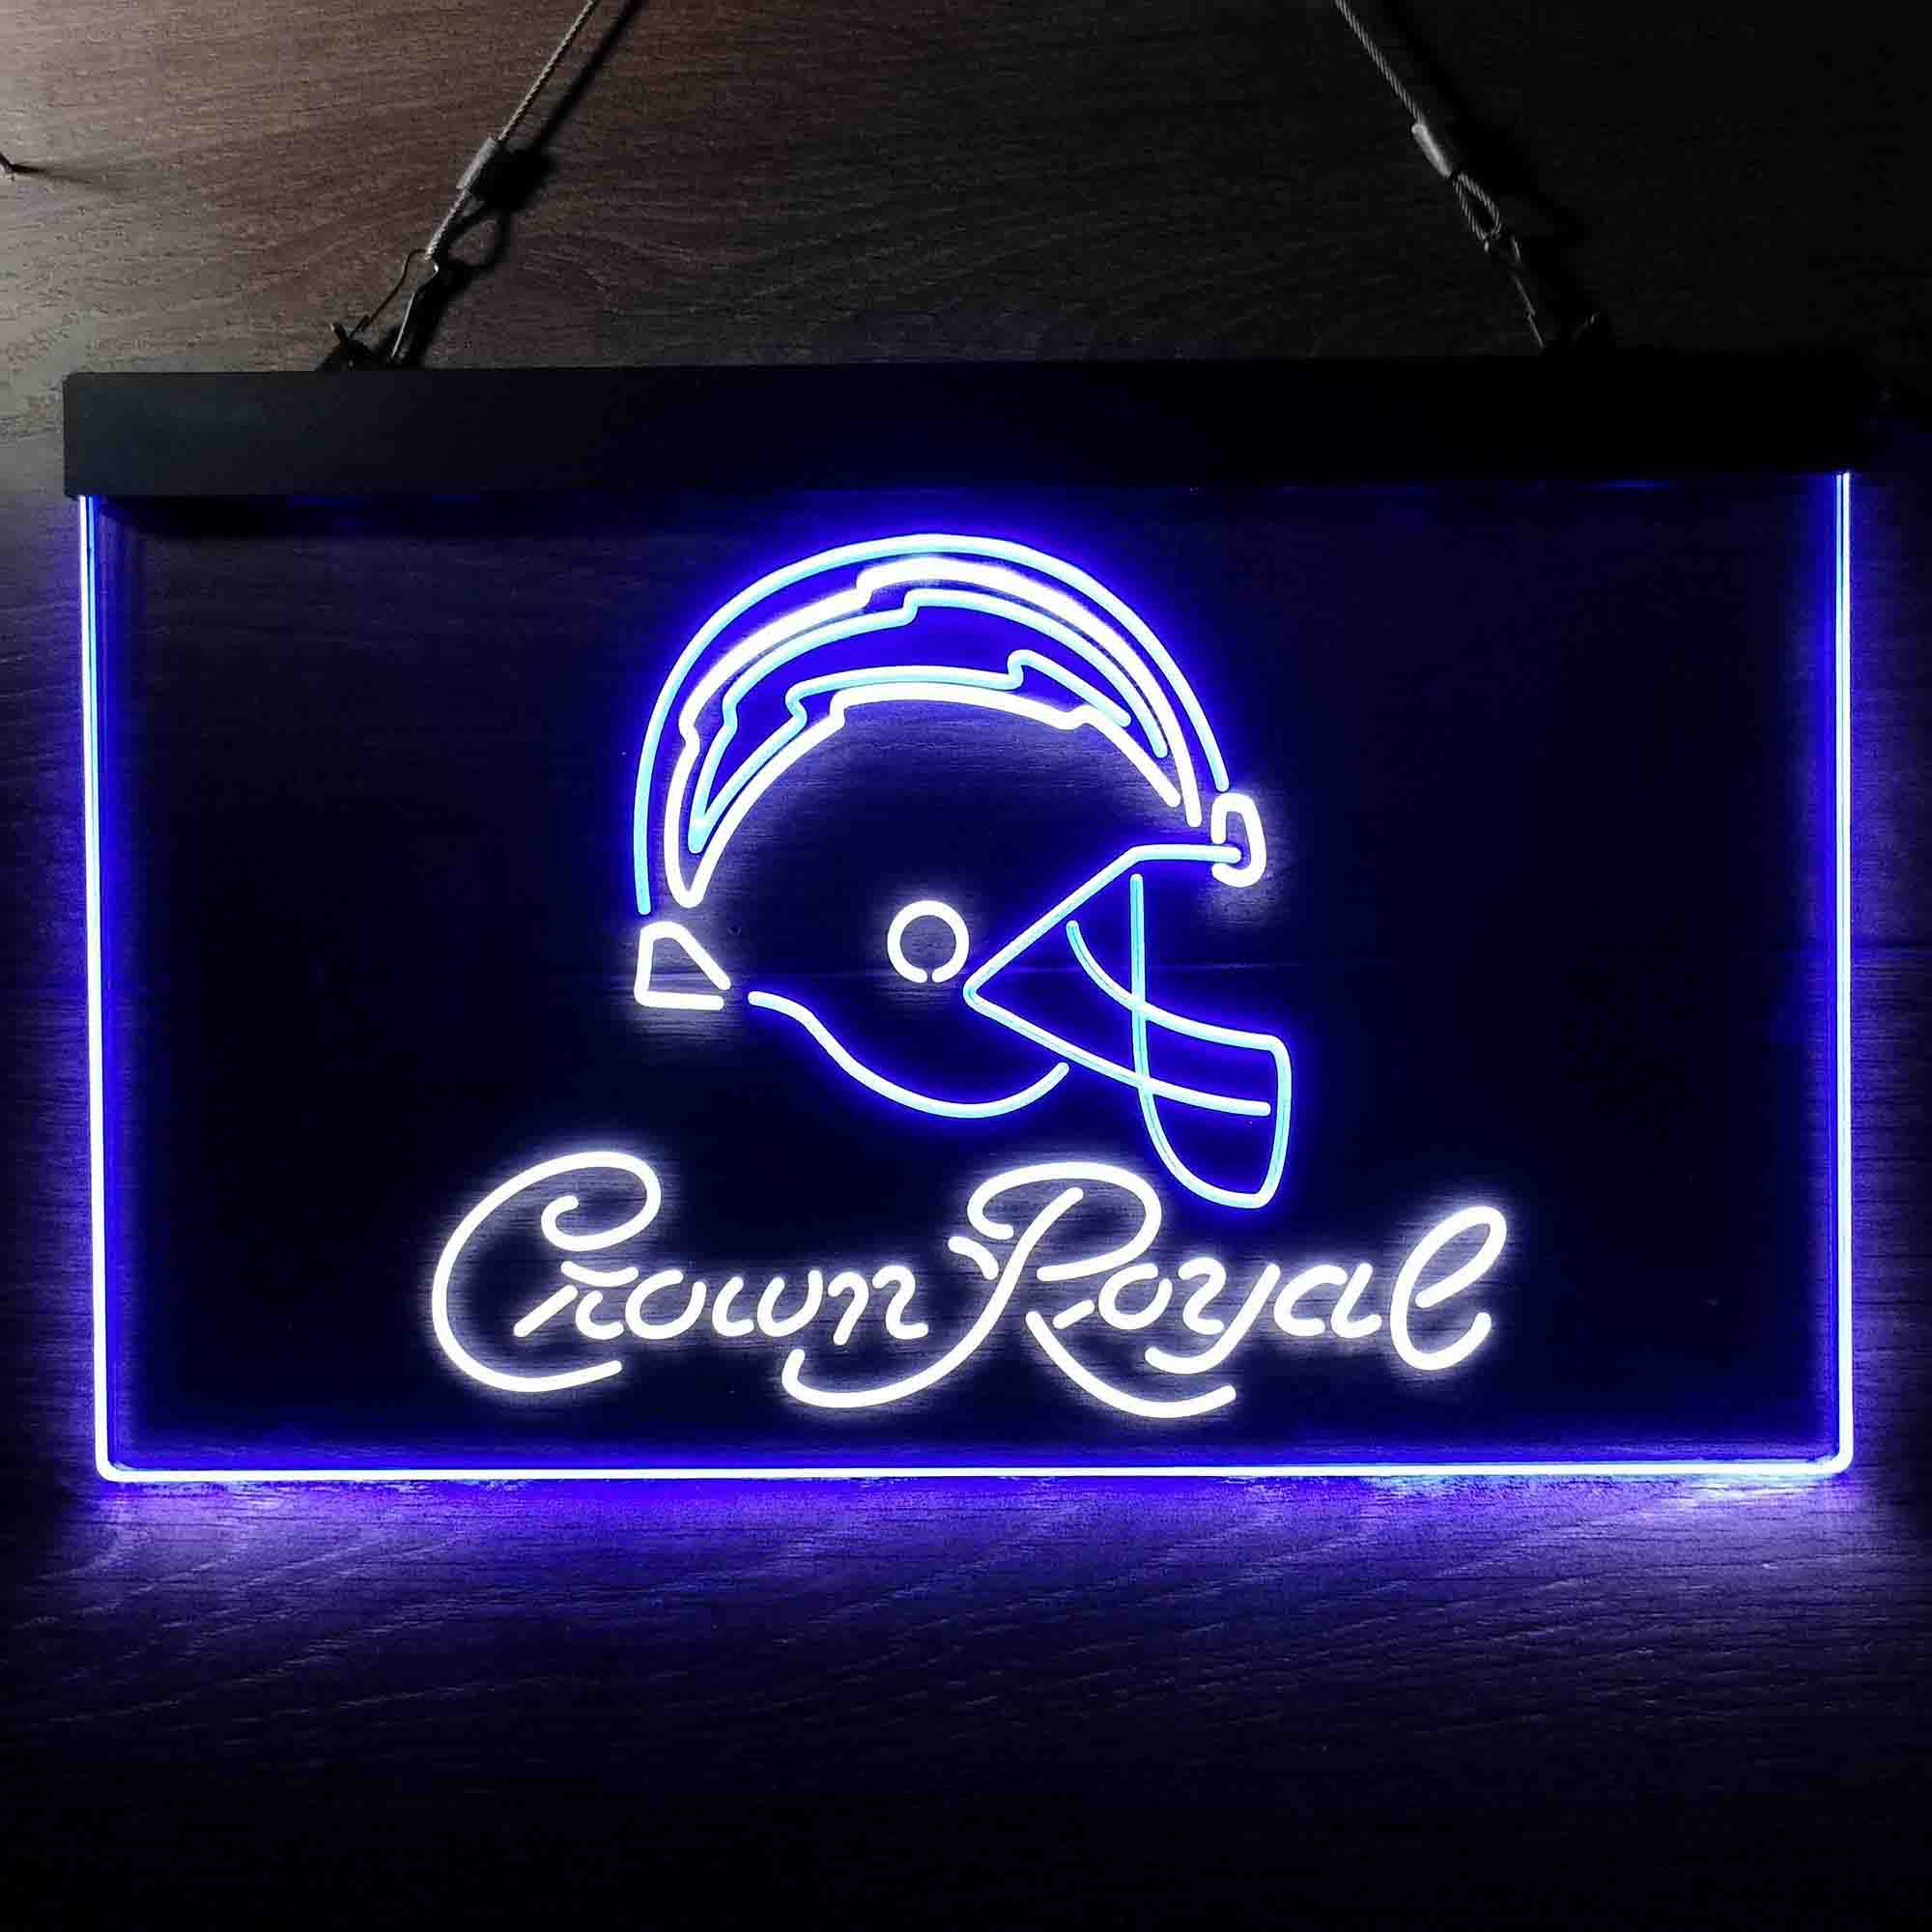 Crown Royal Bar Los Angeles Chargers Est. 1960 Neon-Like LED Sign